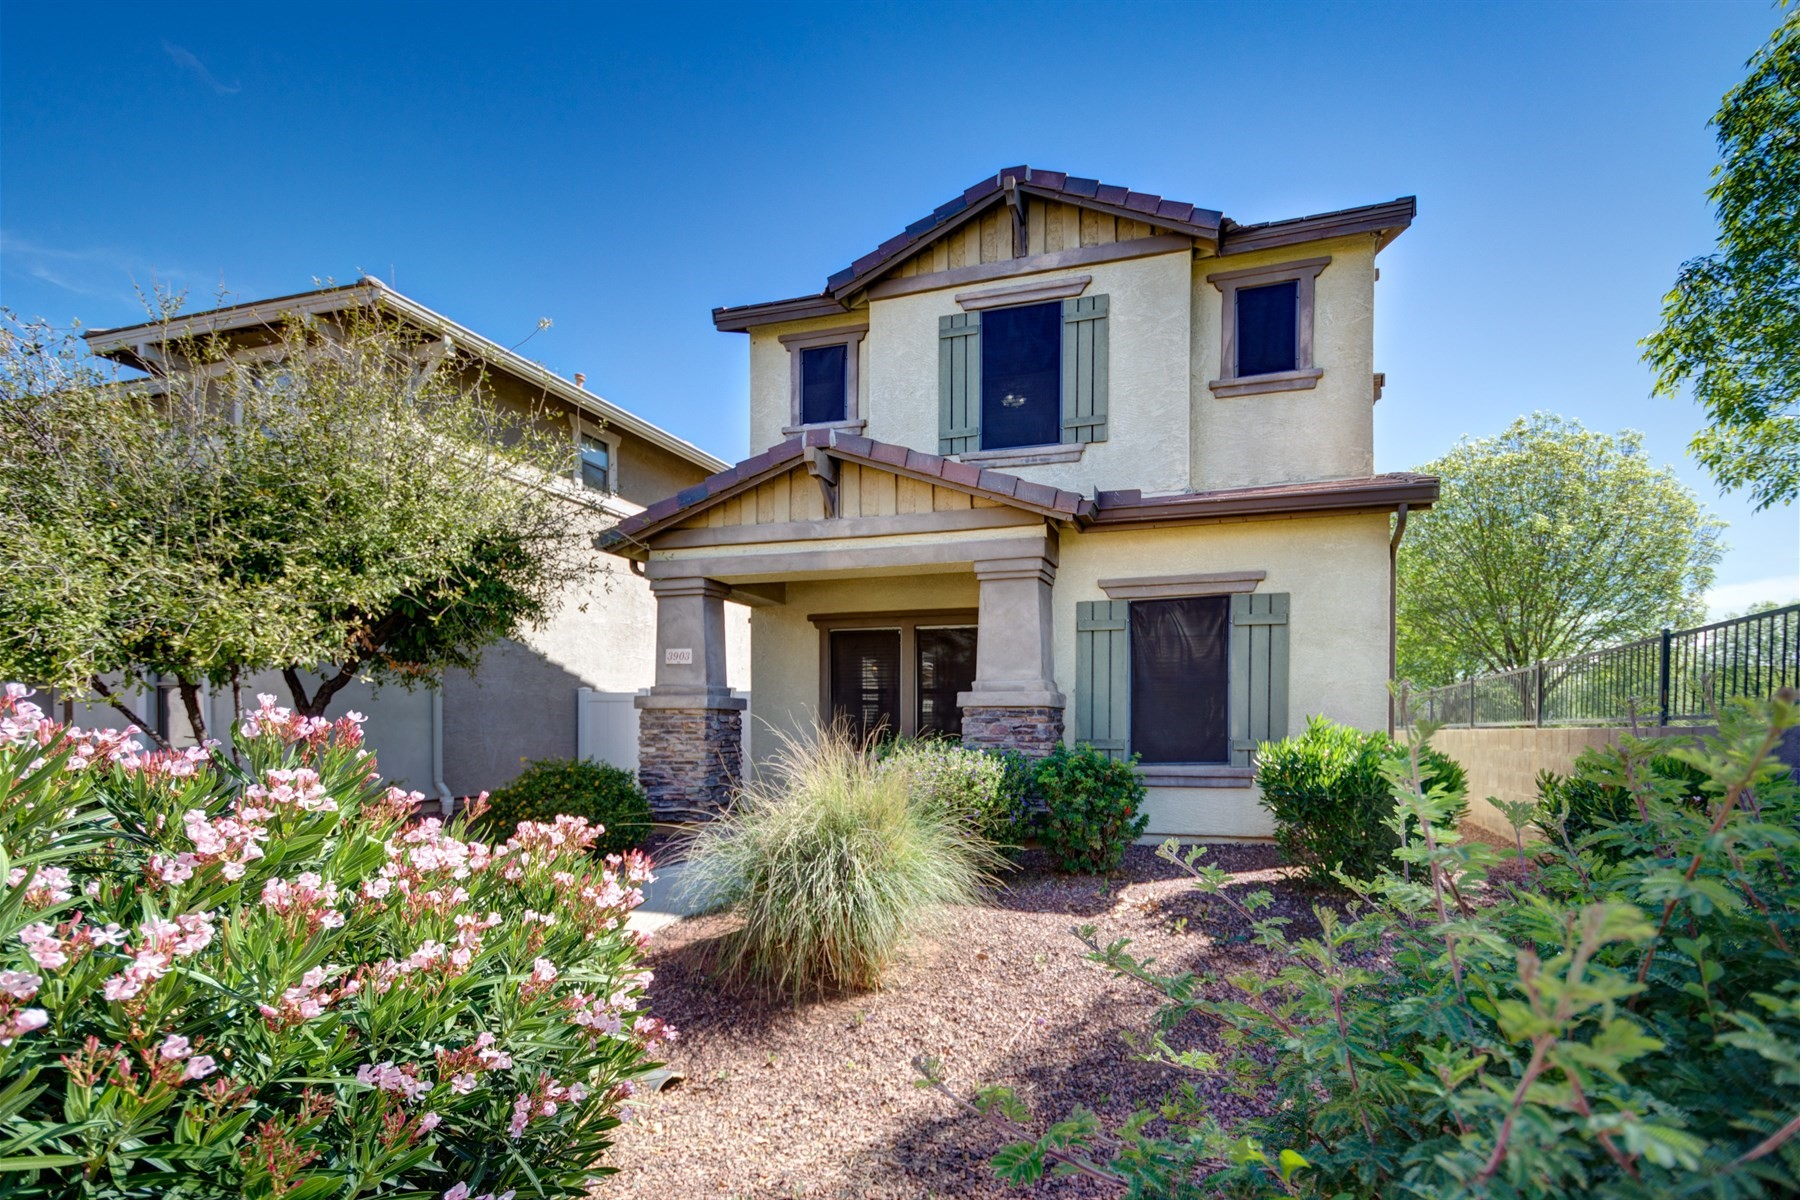 Single Family Home for Sale at Gorgeous Two Story Ray Ranch Home 3903 E Kent Ave, Gilbert, Arizona, 85296 United States